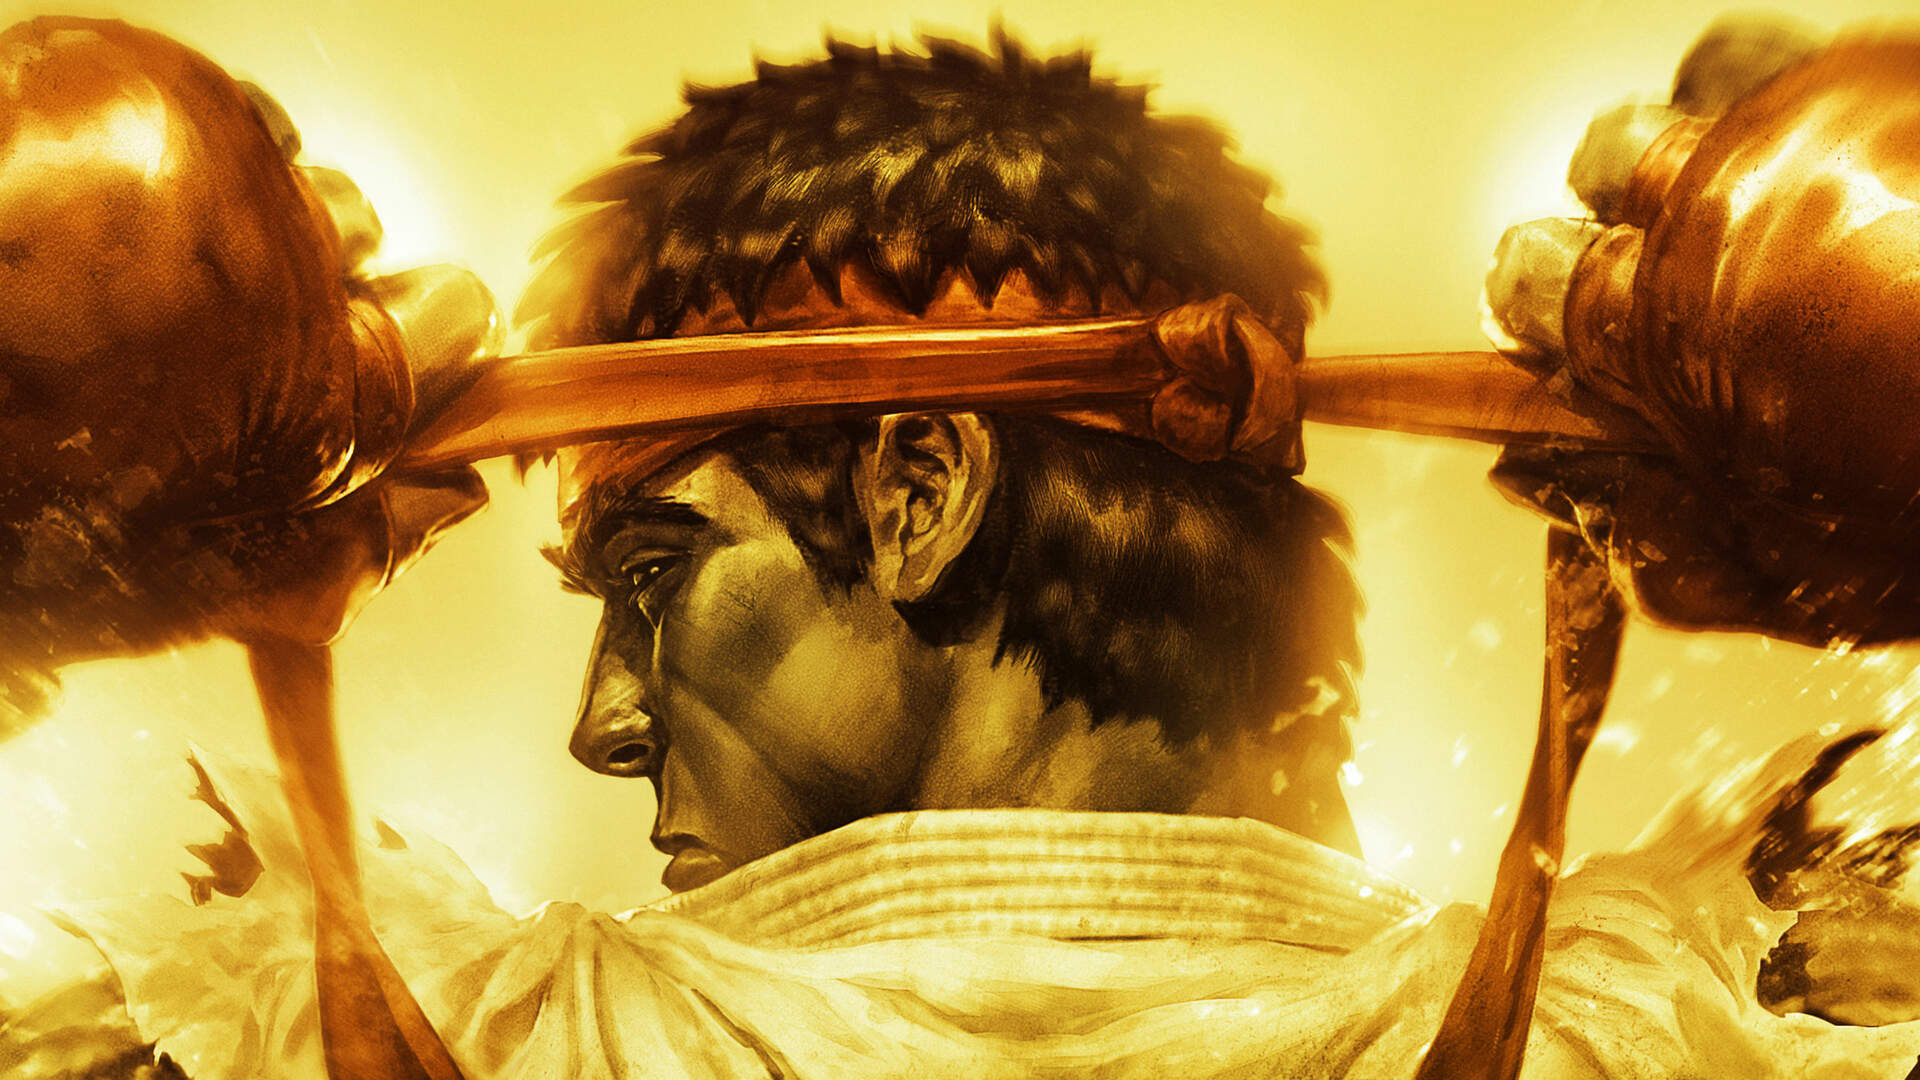 Street Fighter 4 Producer Yoshinori Ono Once Considered Making It Turn-Based